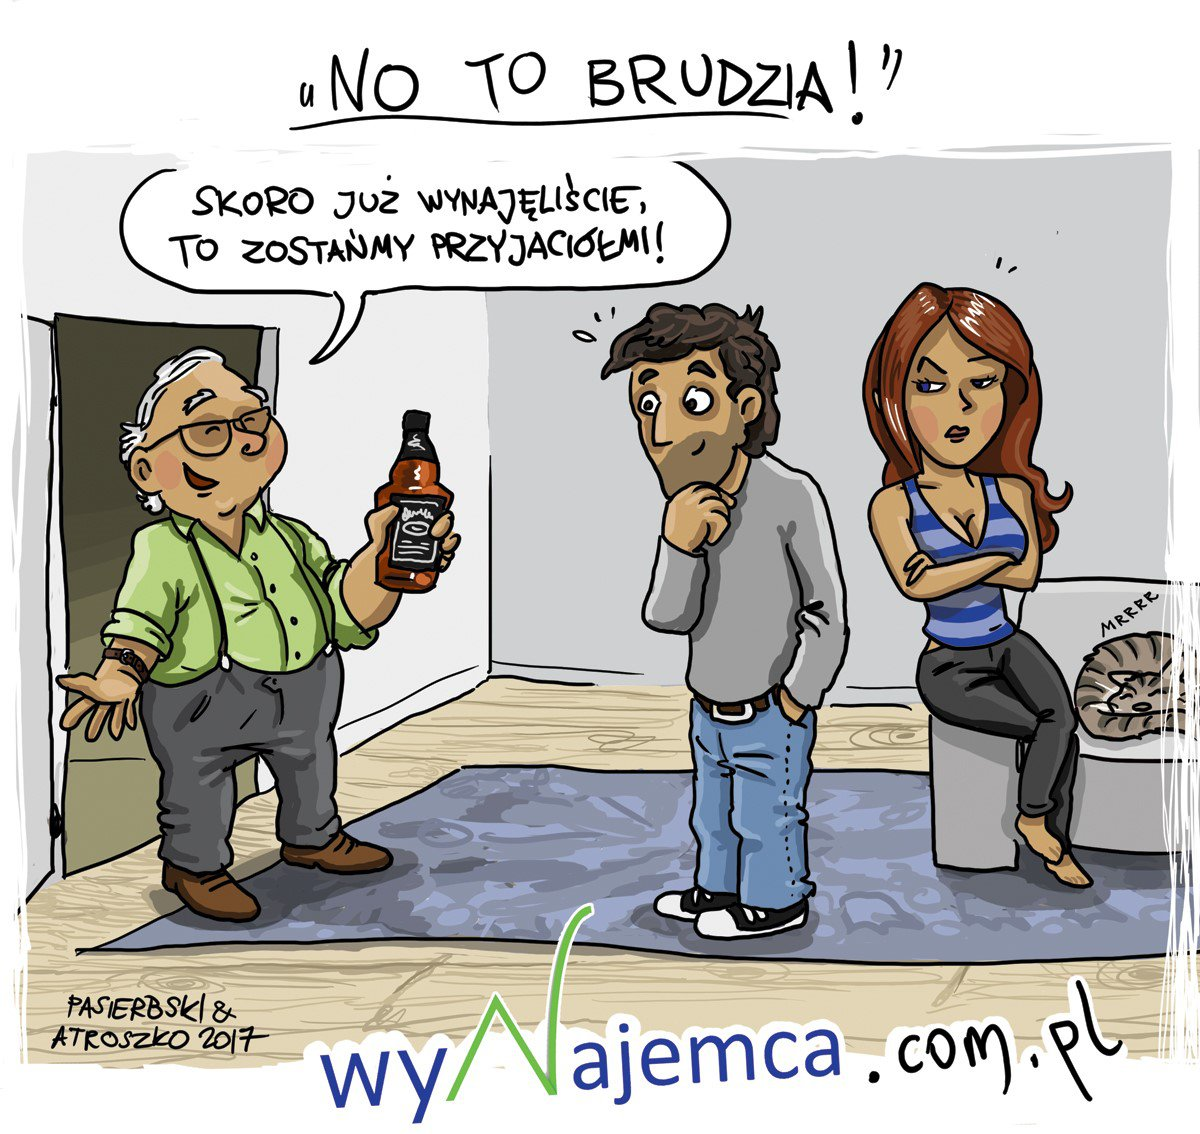 05 no to brudzia